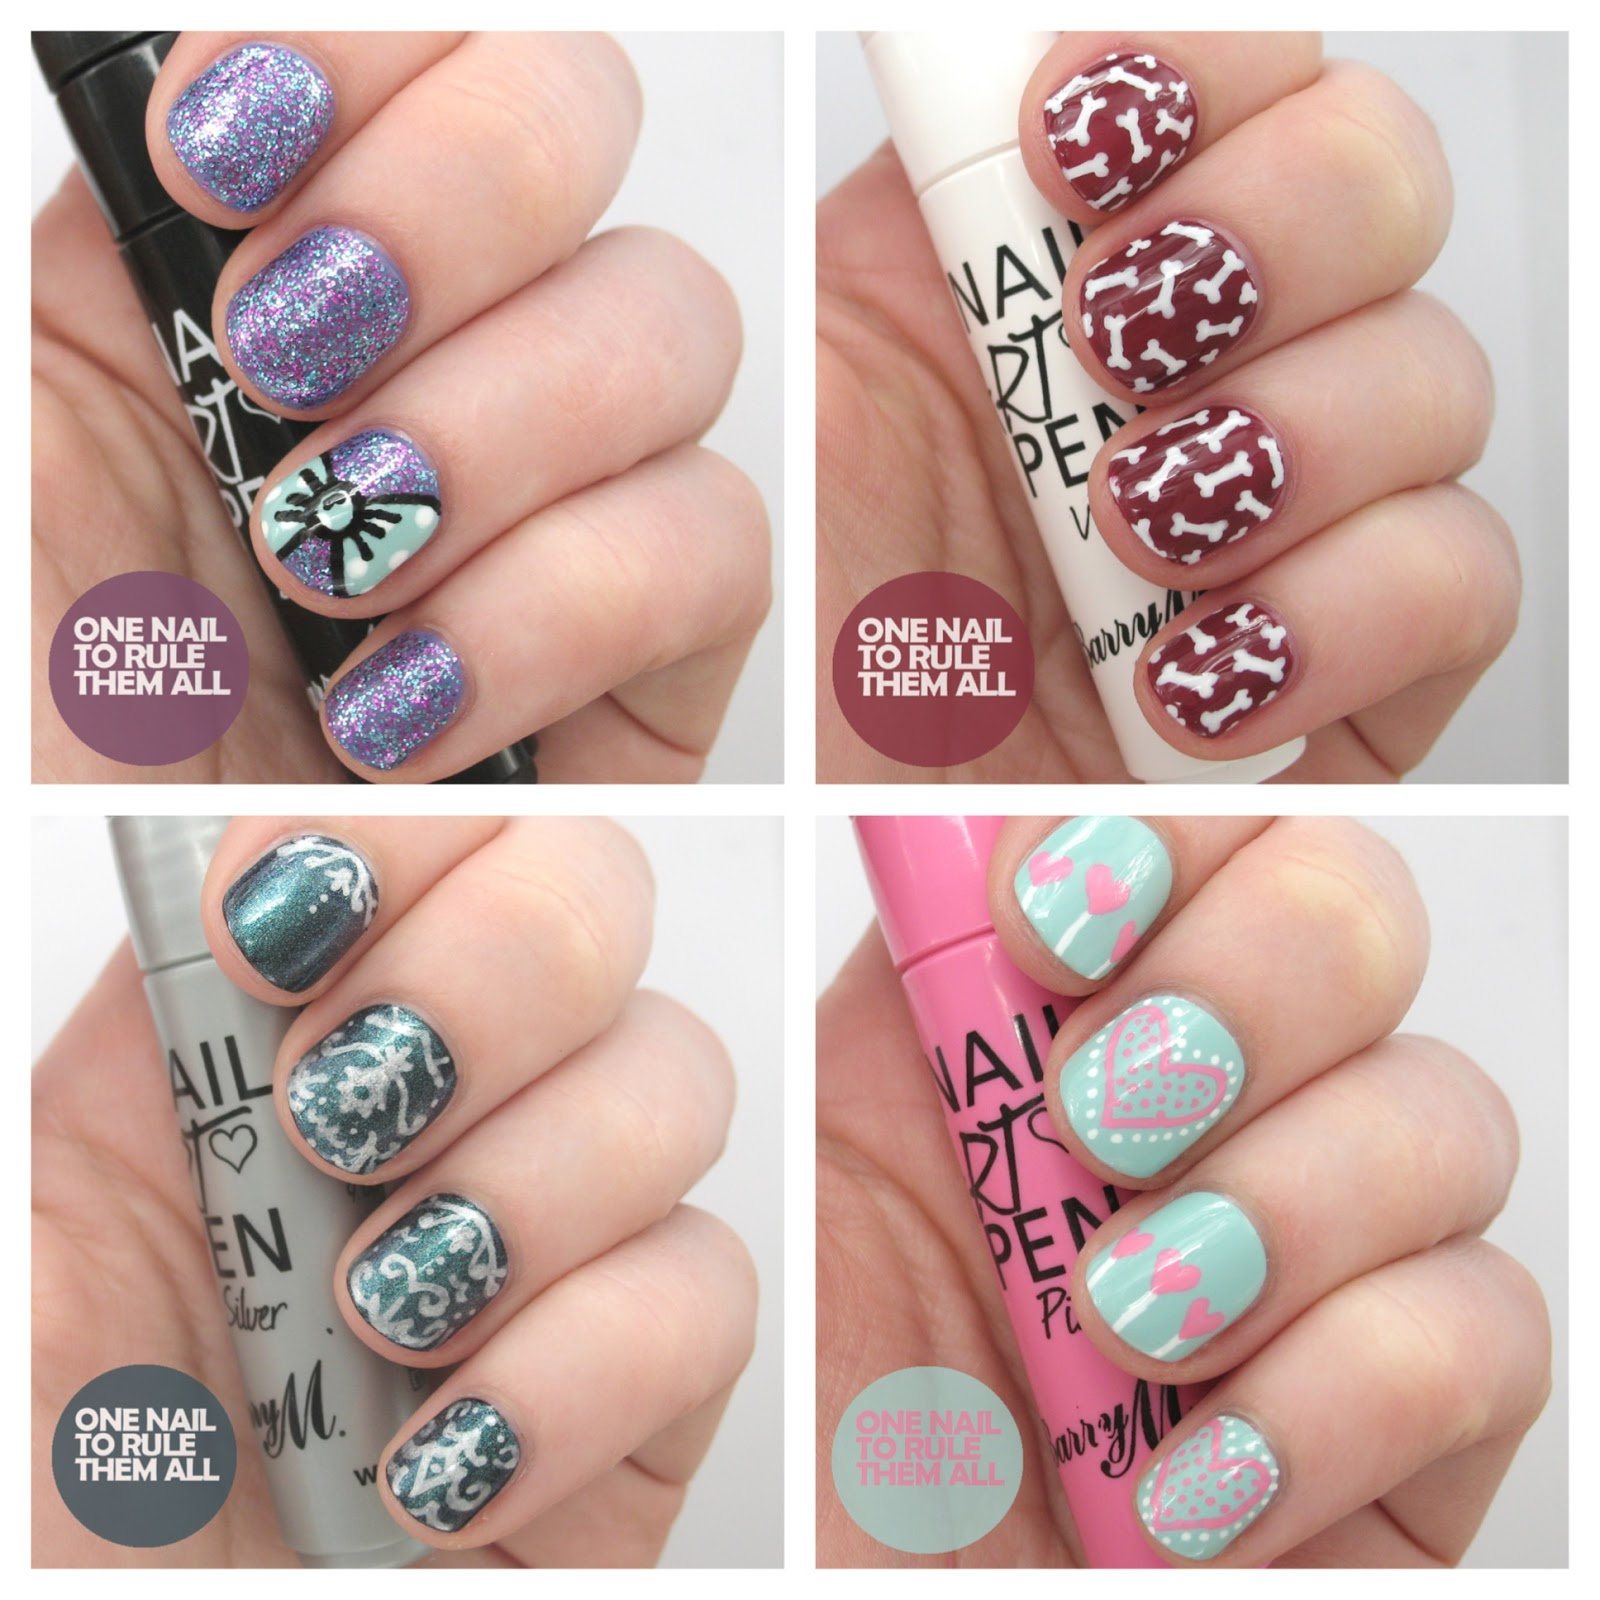 Nail Art Pens: One Nail To Rule Them All: Barry M Nail Art Pens Review